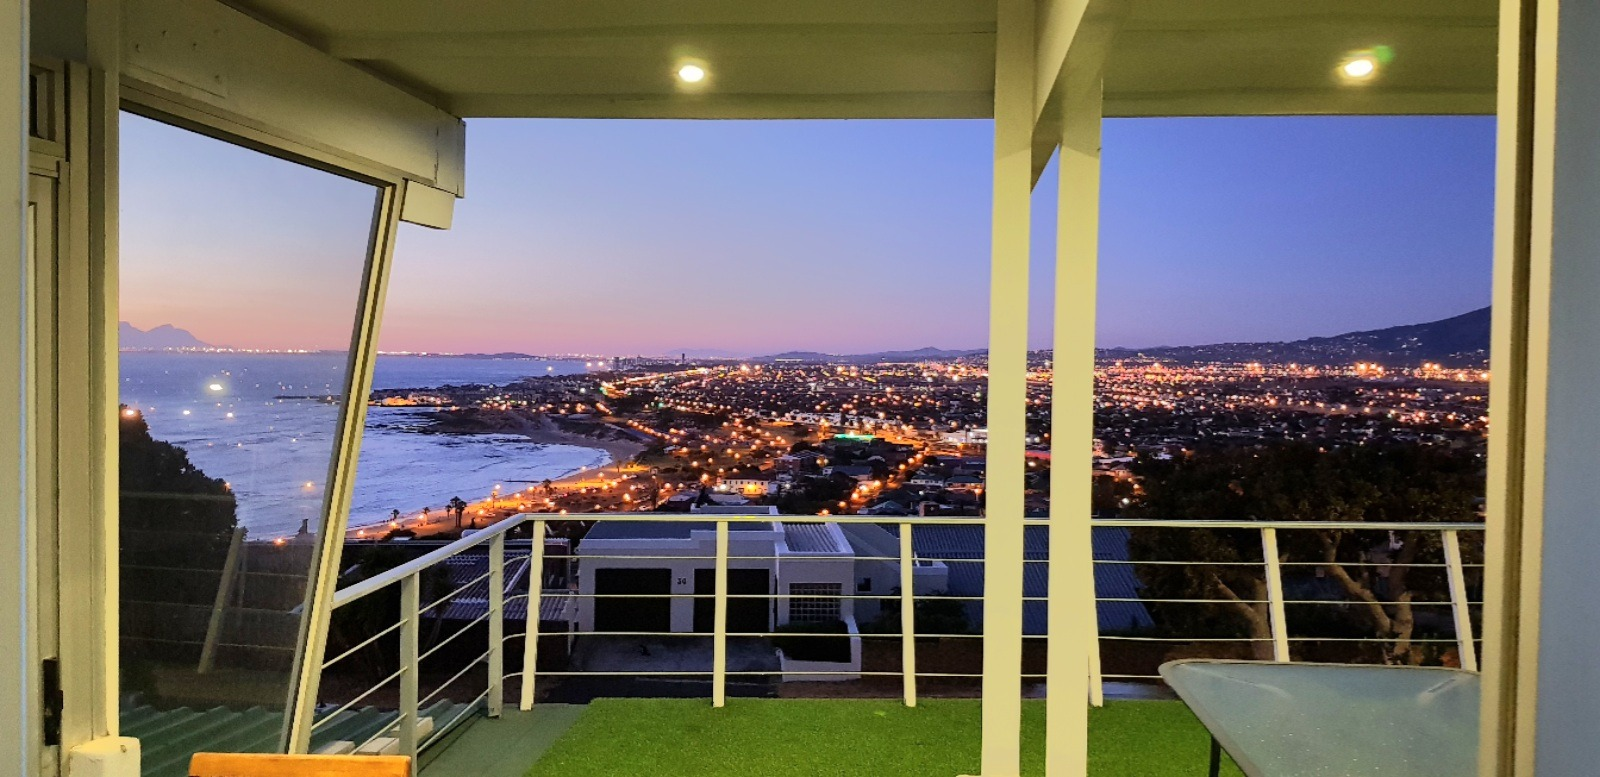 CHARMING FAMILY HOME WITH AWESOME VIEWS